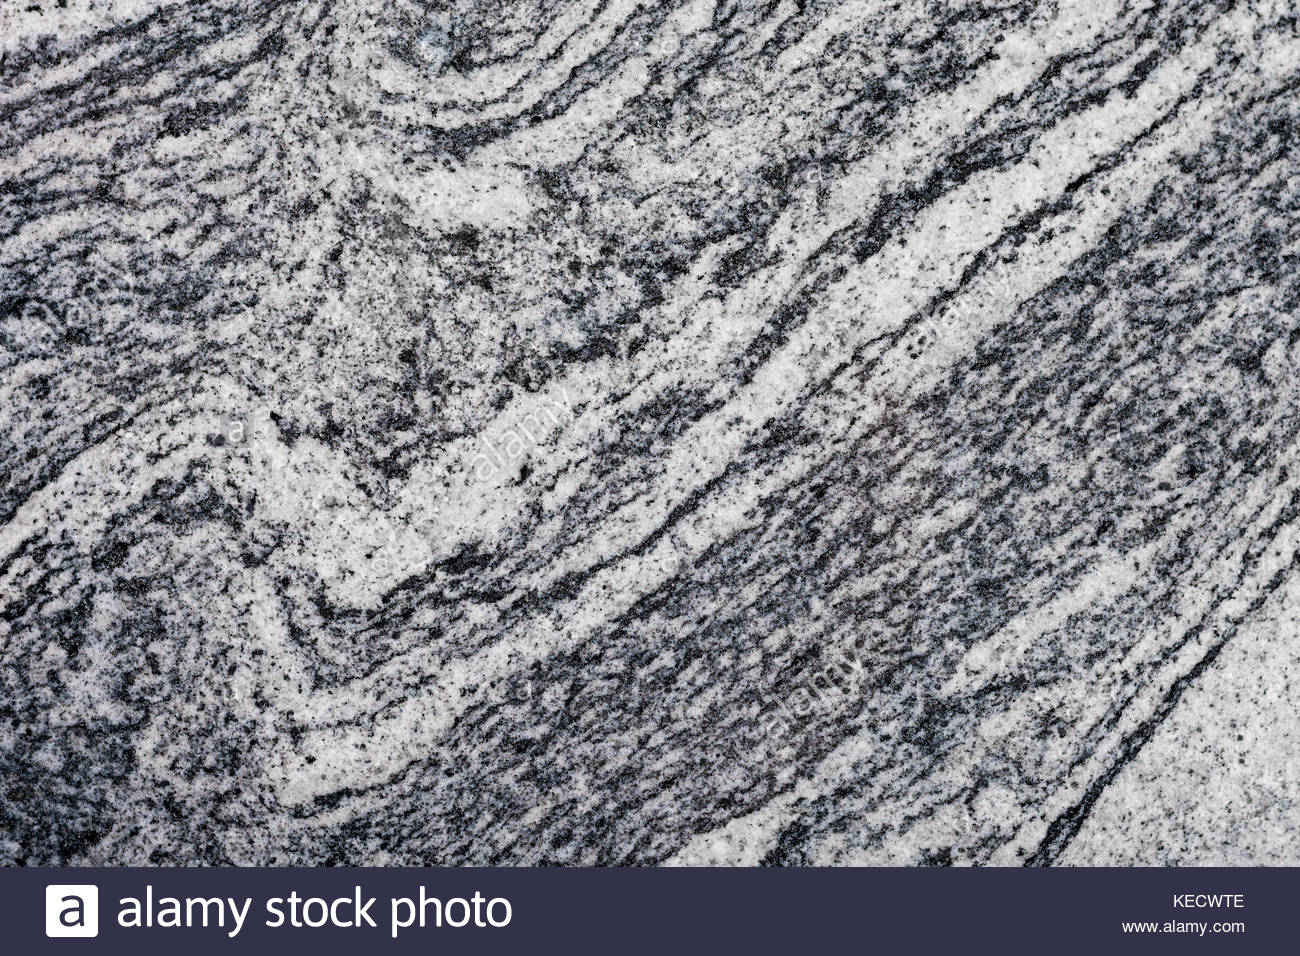 Grey granite abstract background board copy space copywritting. - Stock Image